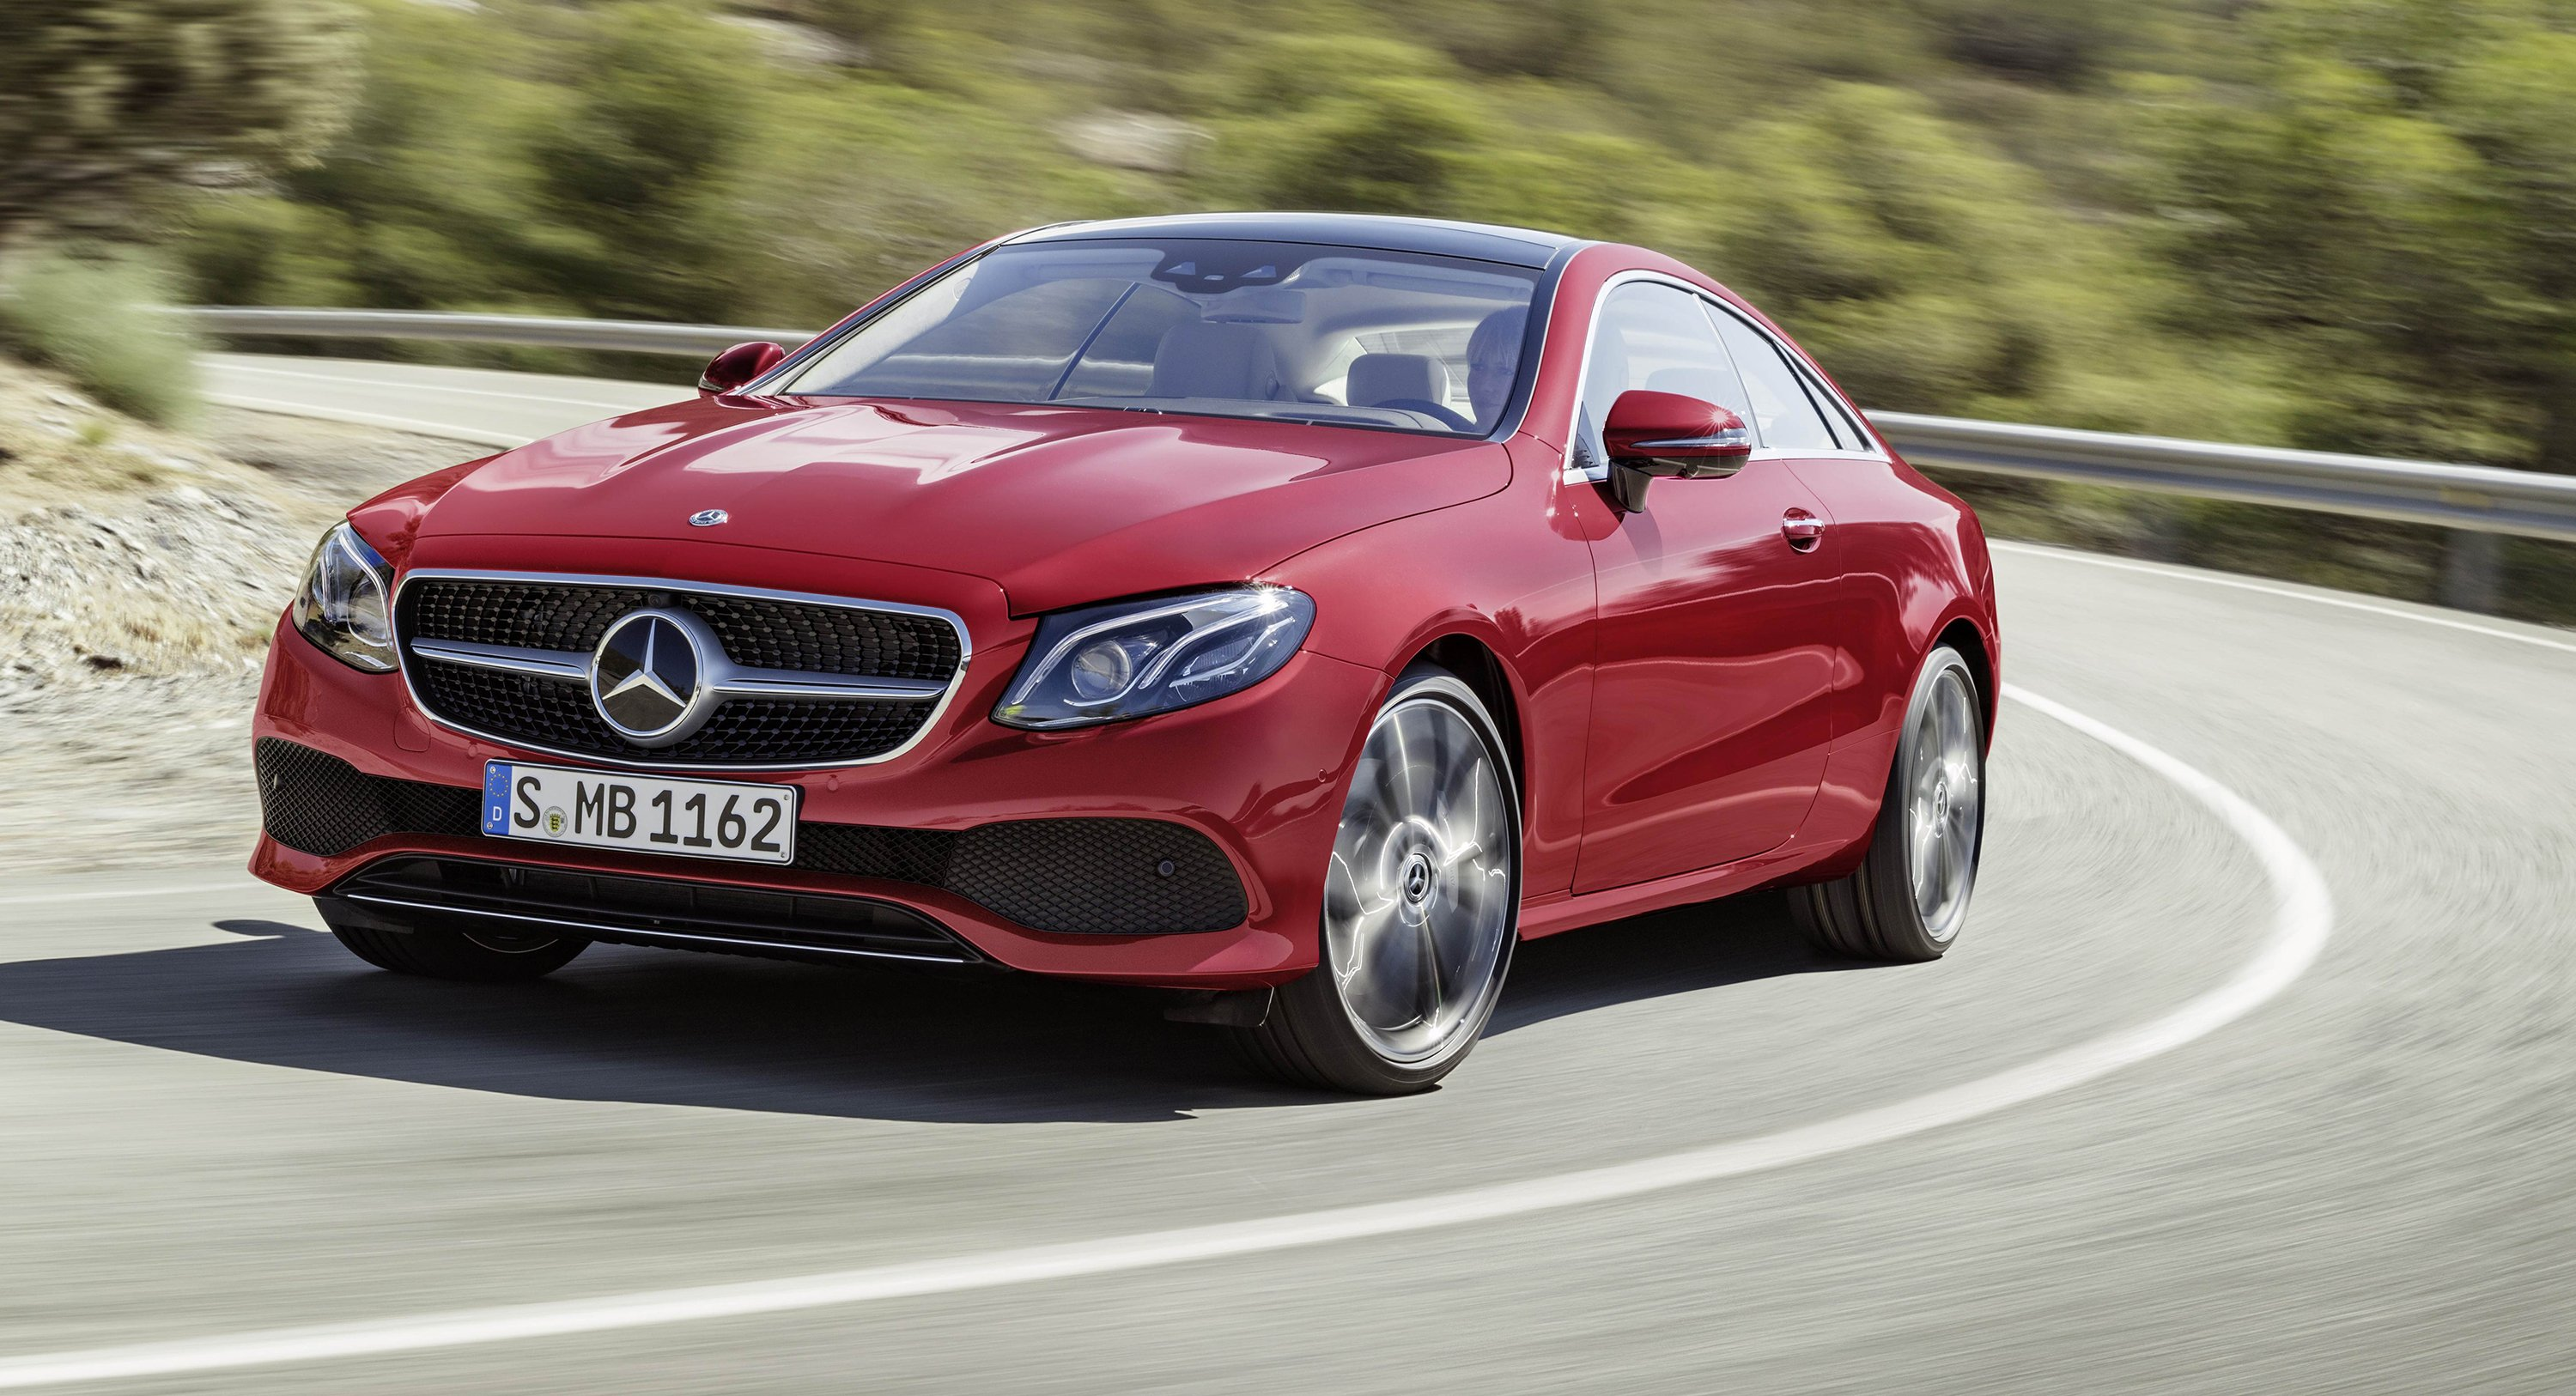 2017 Mercedes-Benz E-Class Coupe pricing and specs - Photos